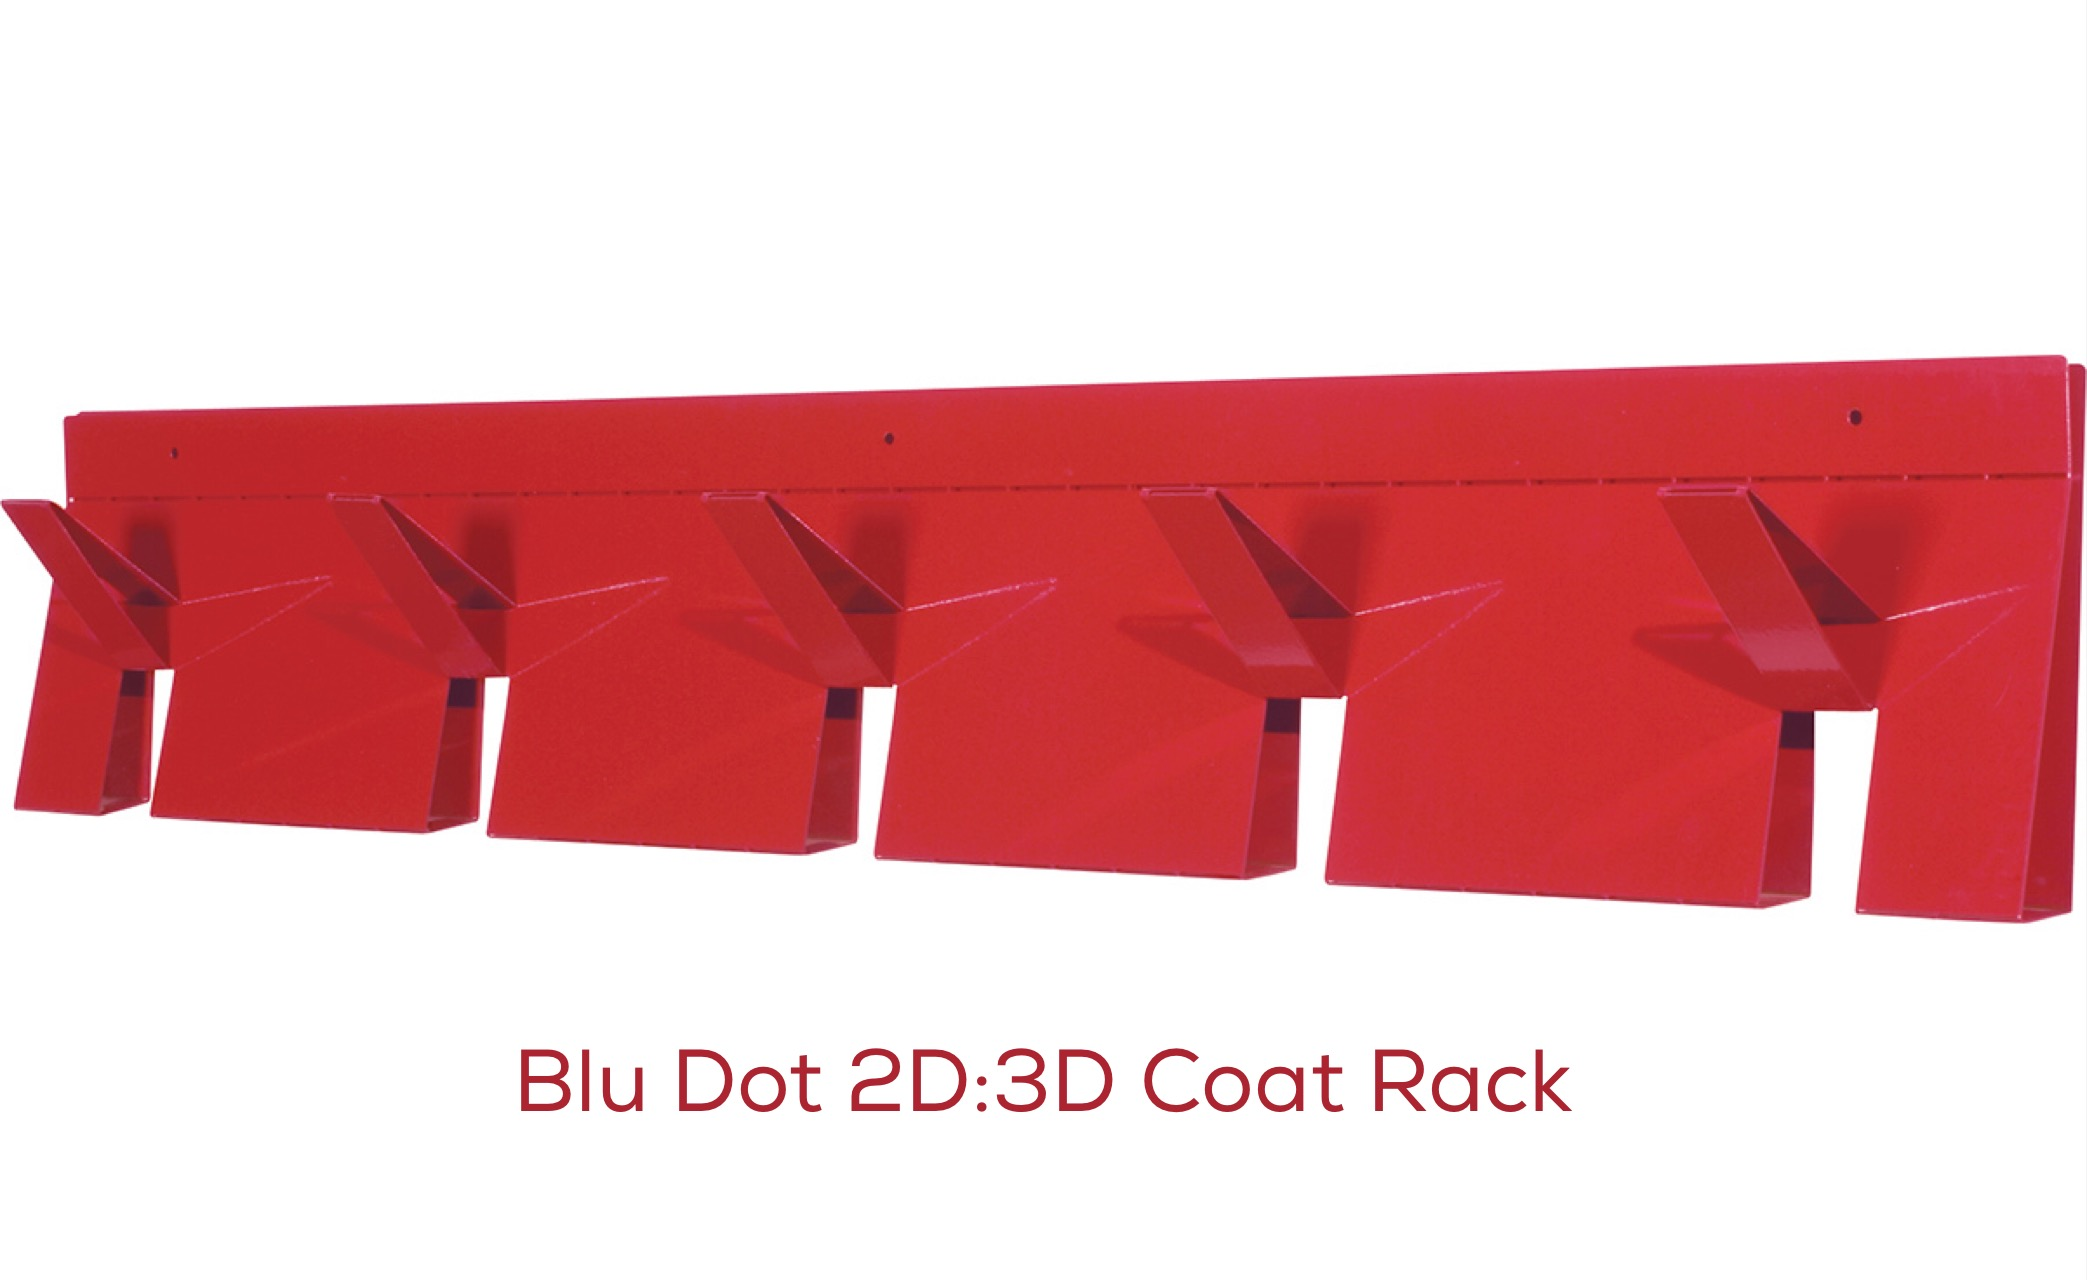 Blu Dot 2D:3D Coat Rack